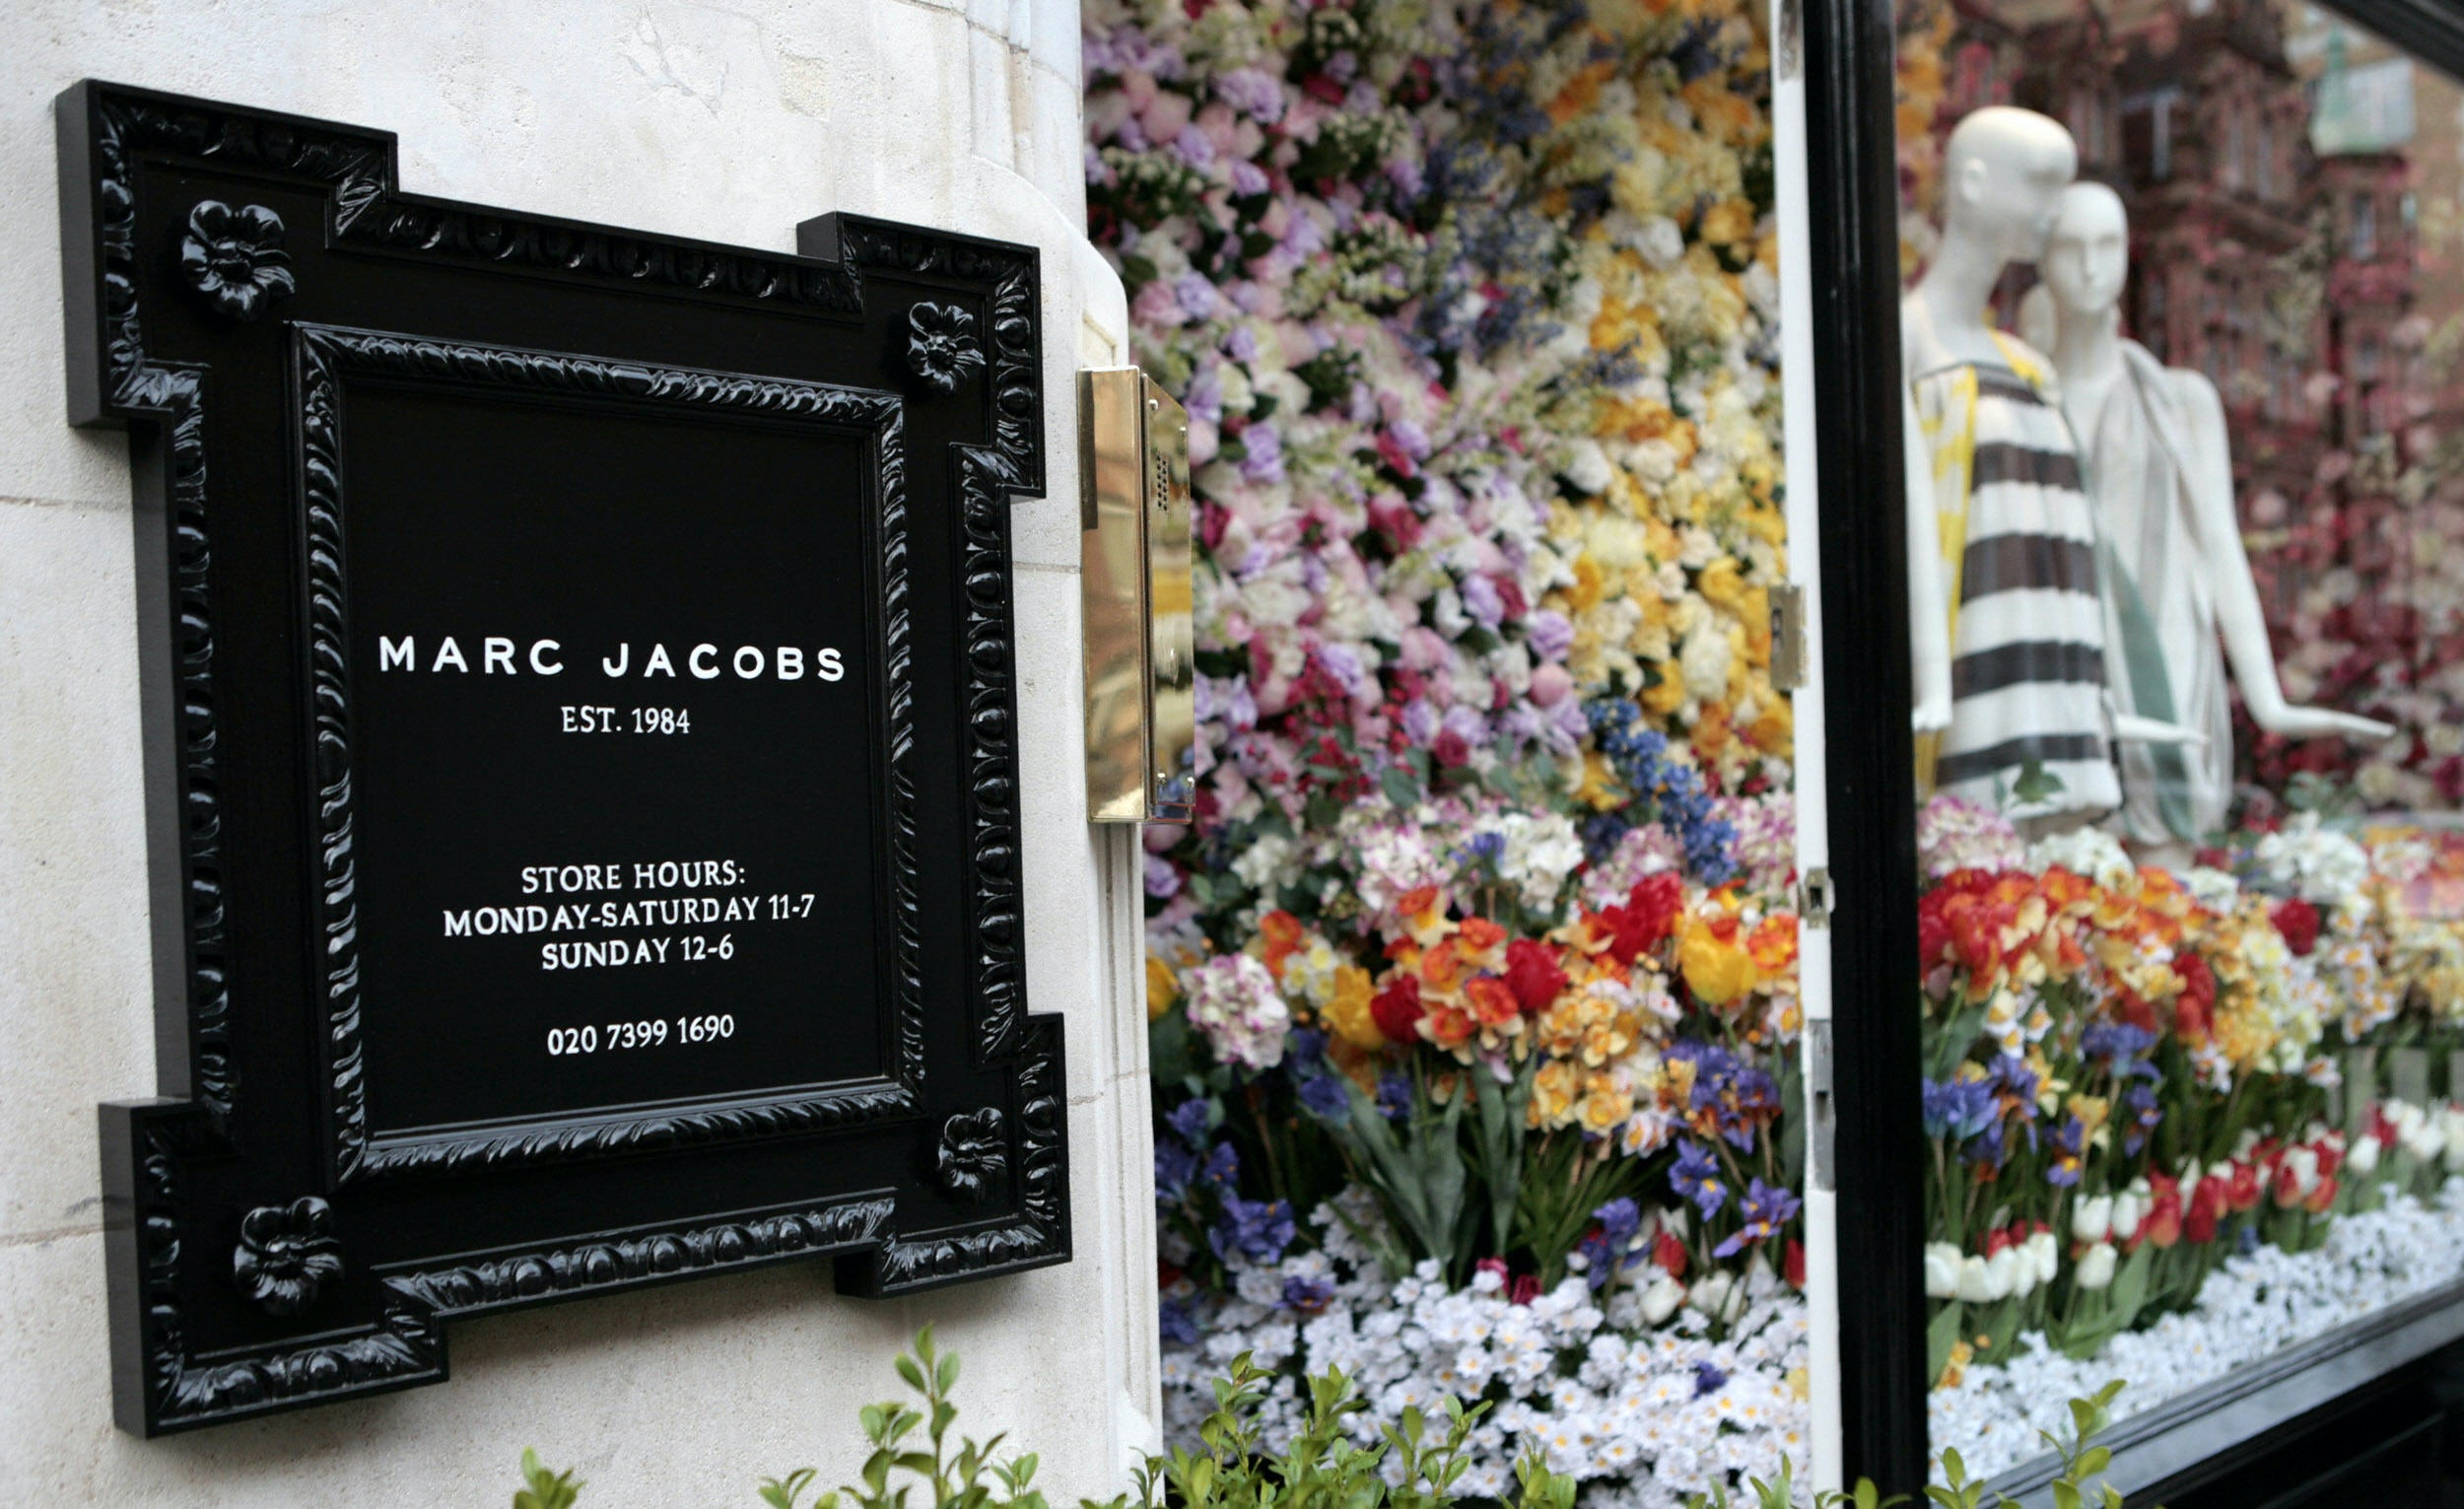 Marc Jacobs to Close London Store and Other European Outposts